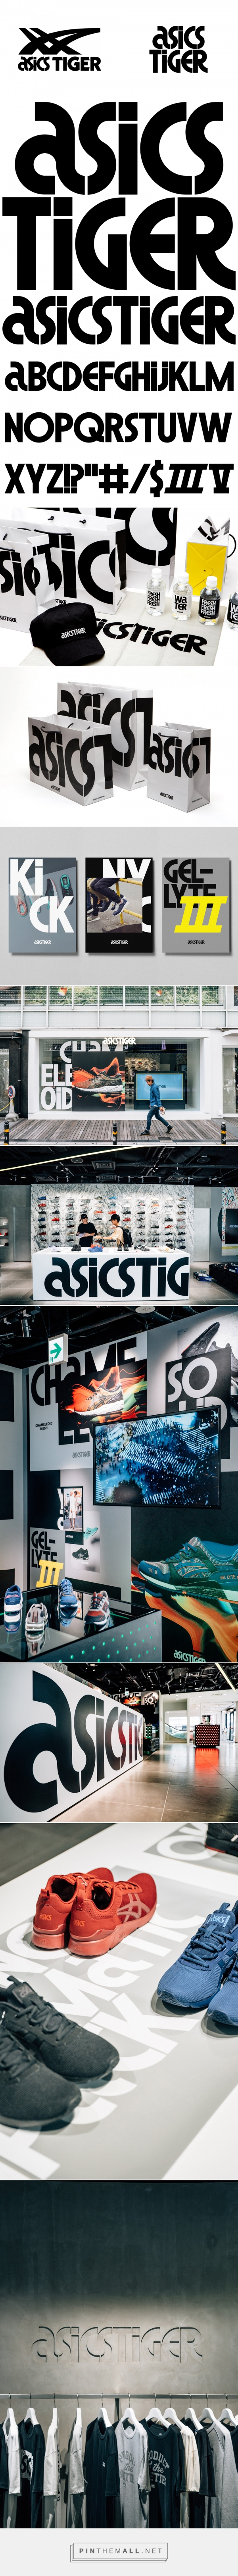 Brand New New Logo and Identity for ASICS Tiger by Alan Peckolick